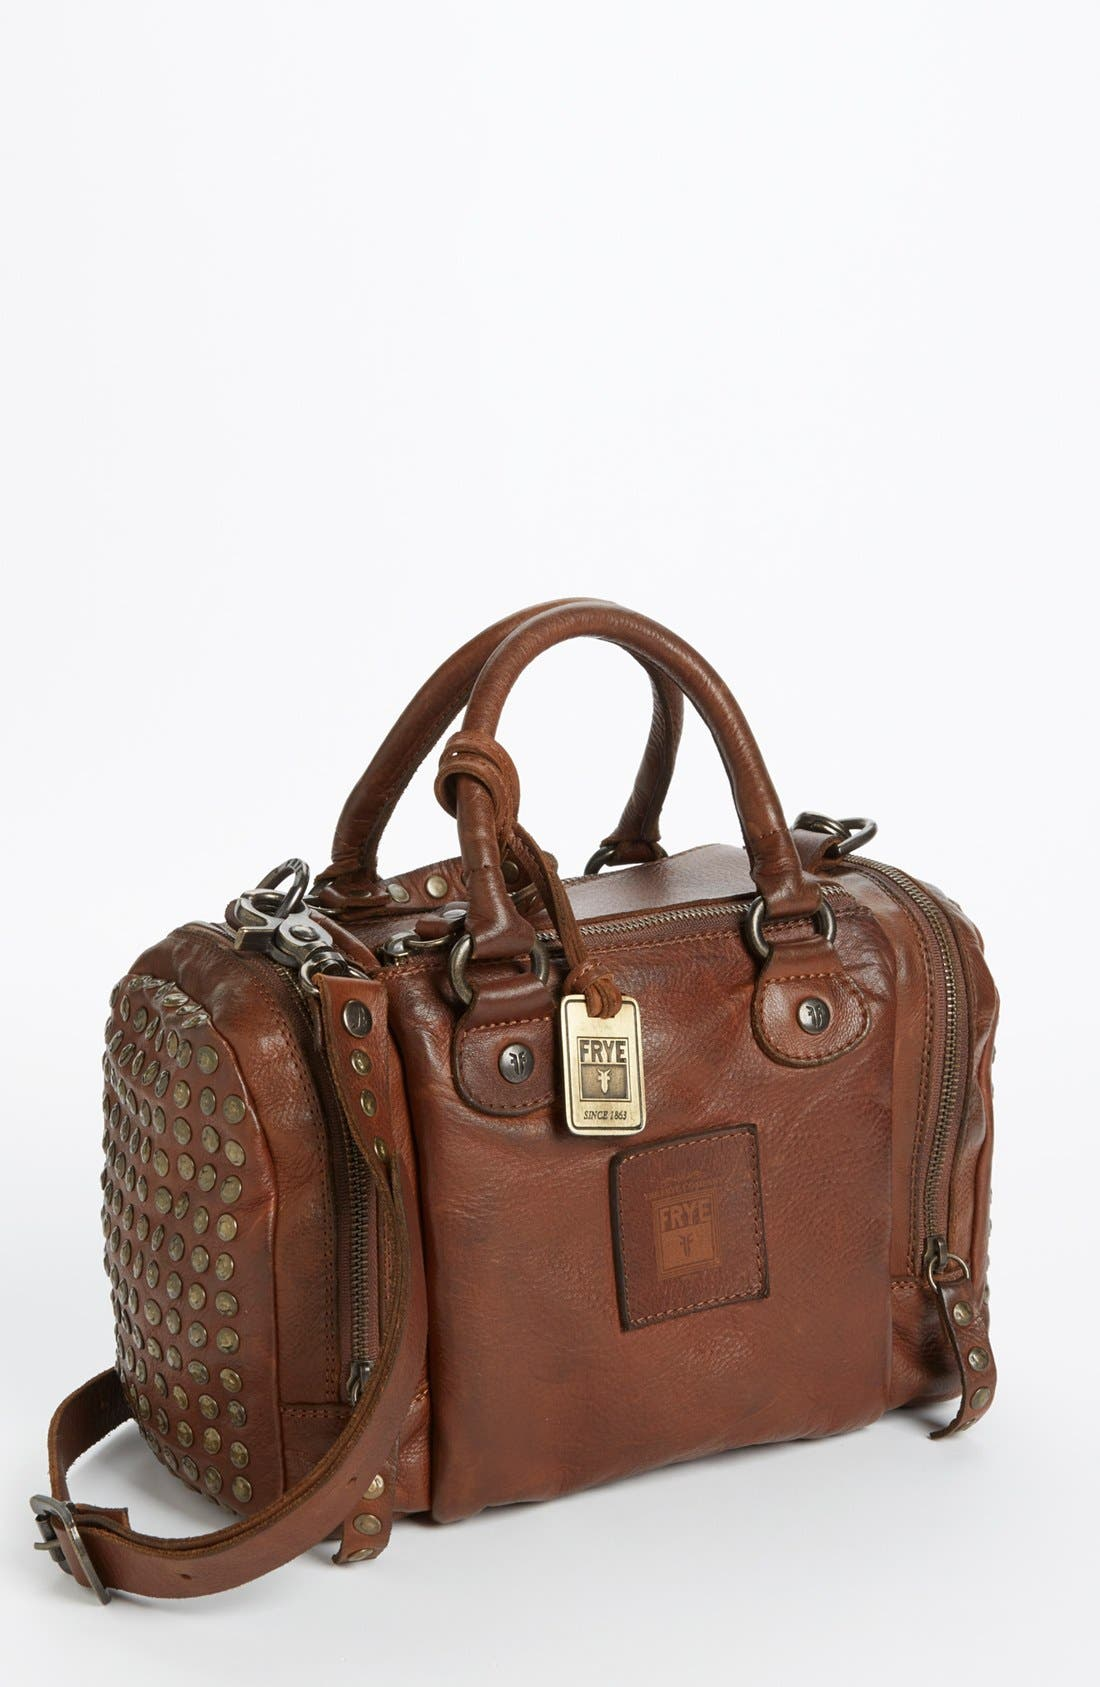 Alternate Image 1 Selected - Frye 'Brooke Speedy' Leather Satchel, Small (Online Only)